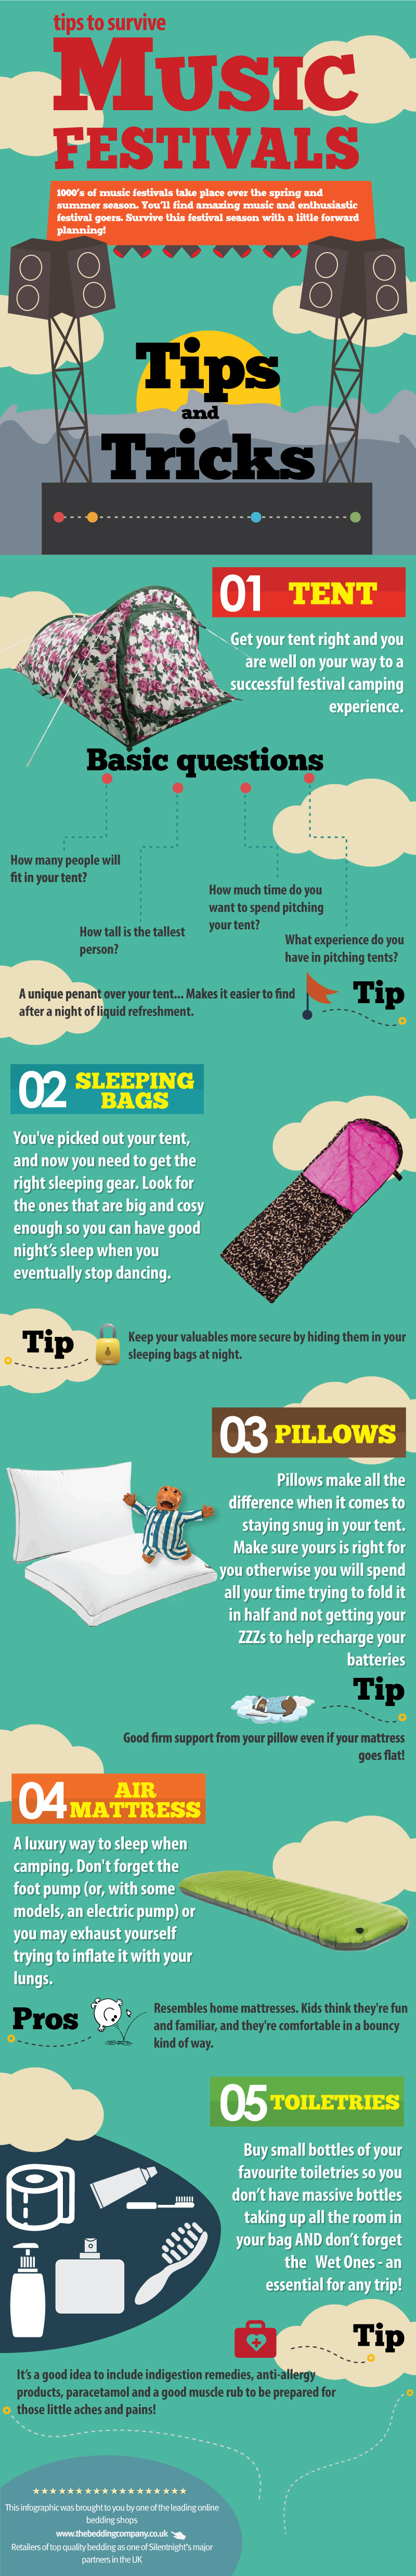 164165? w=800 - Tips for Staying Safe at Music Festivals